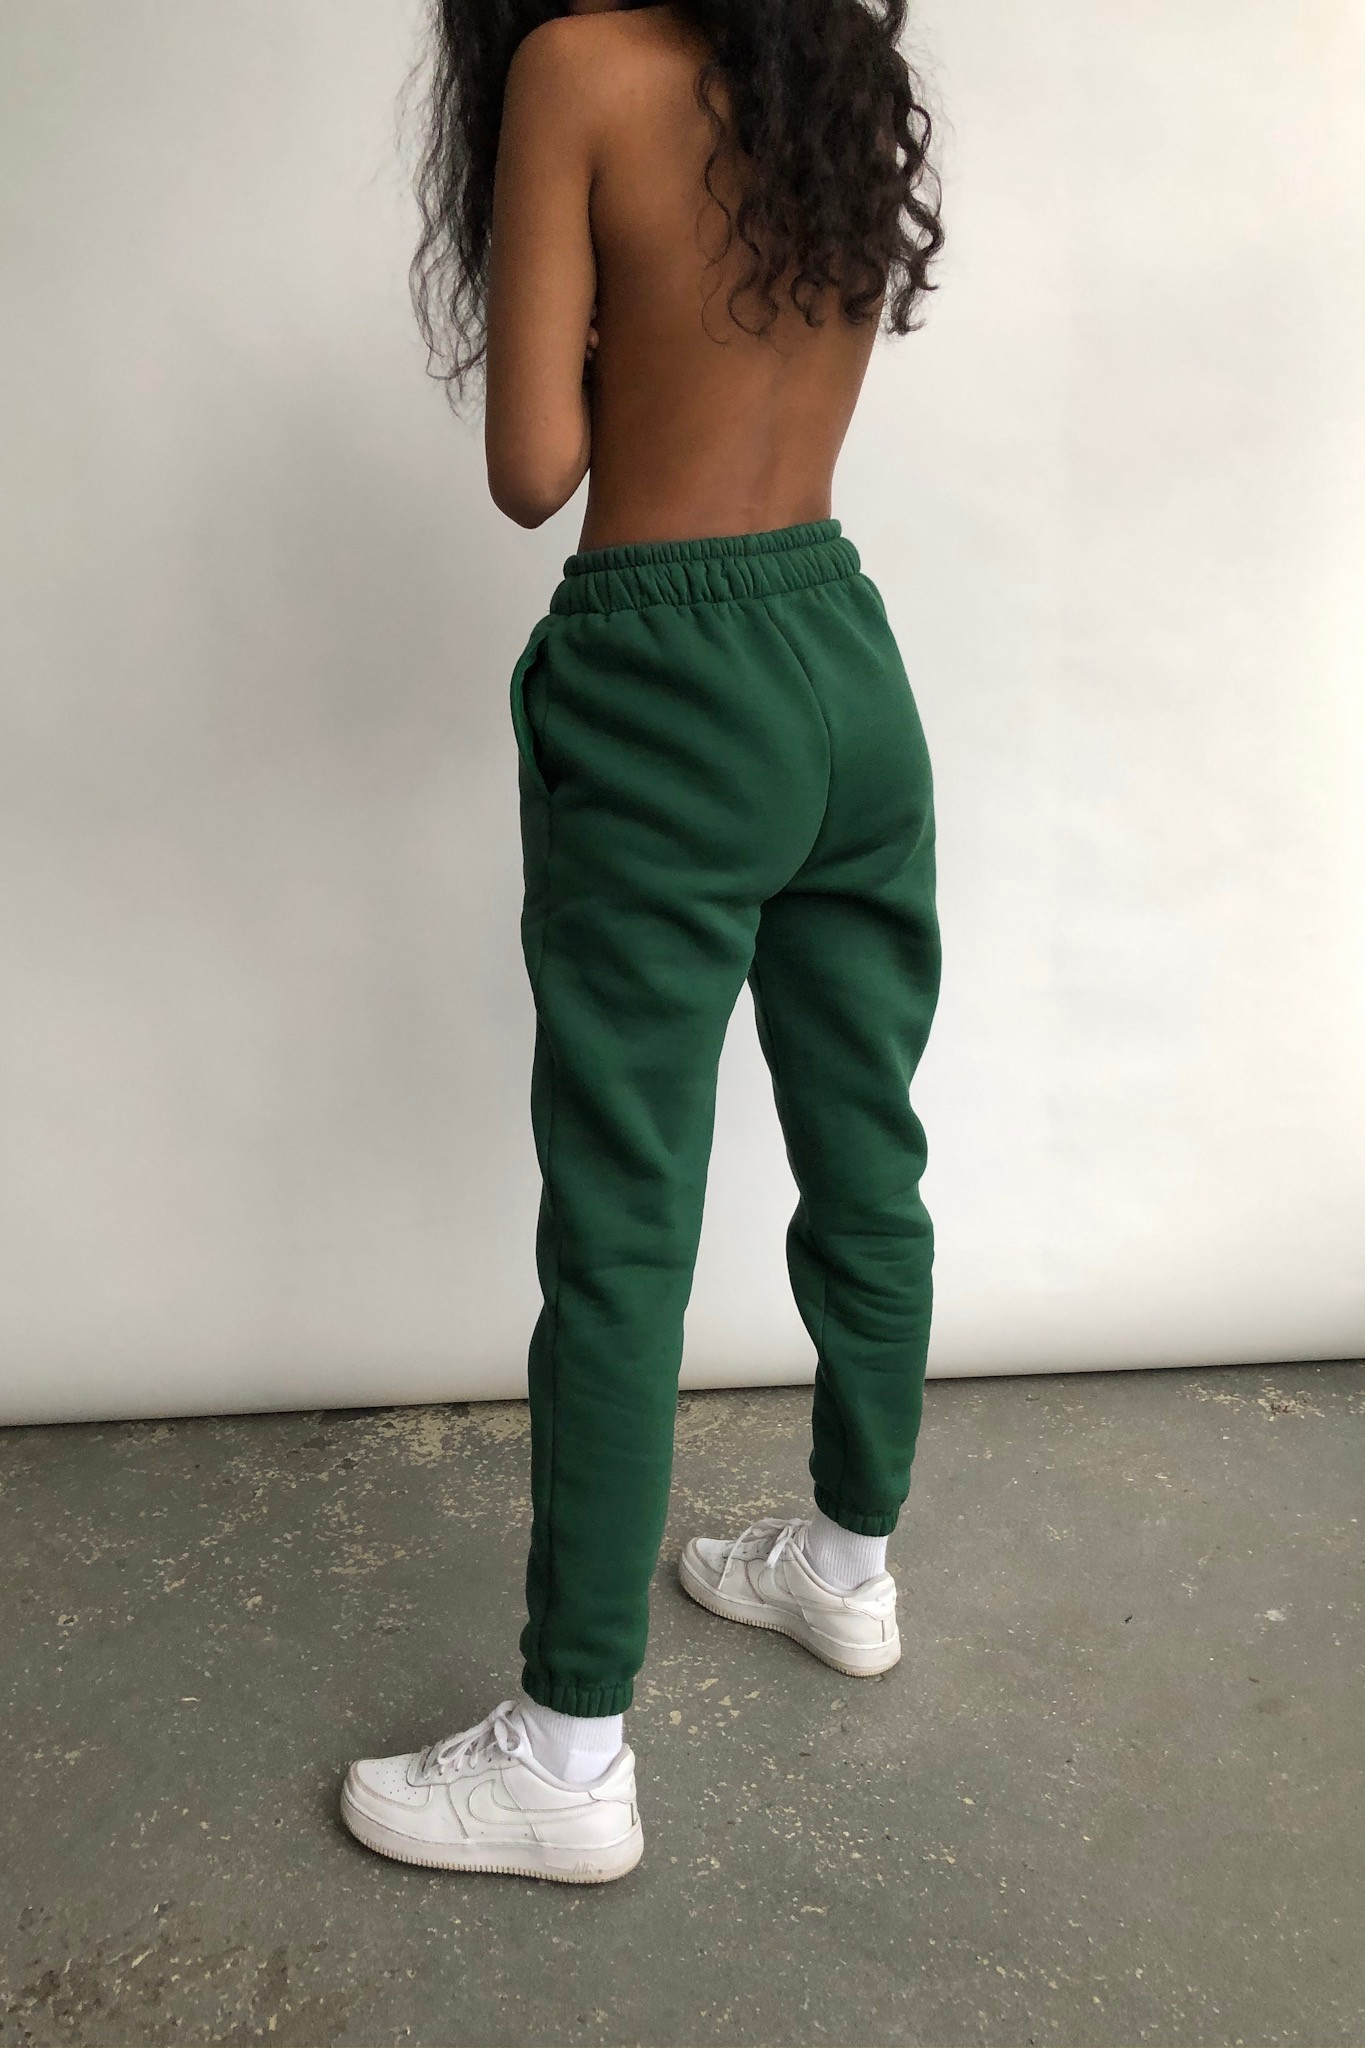 Green Club Sweatpants - whysoserious | JestemSlow.pl